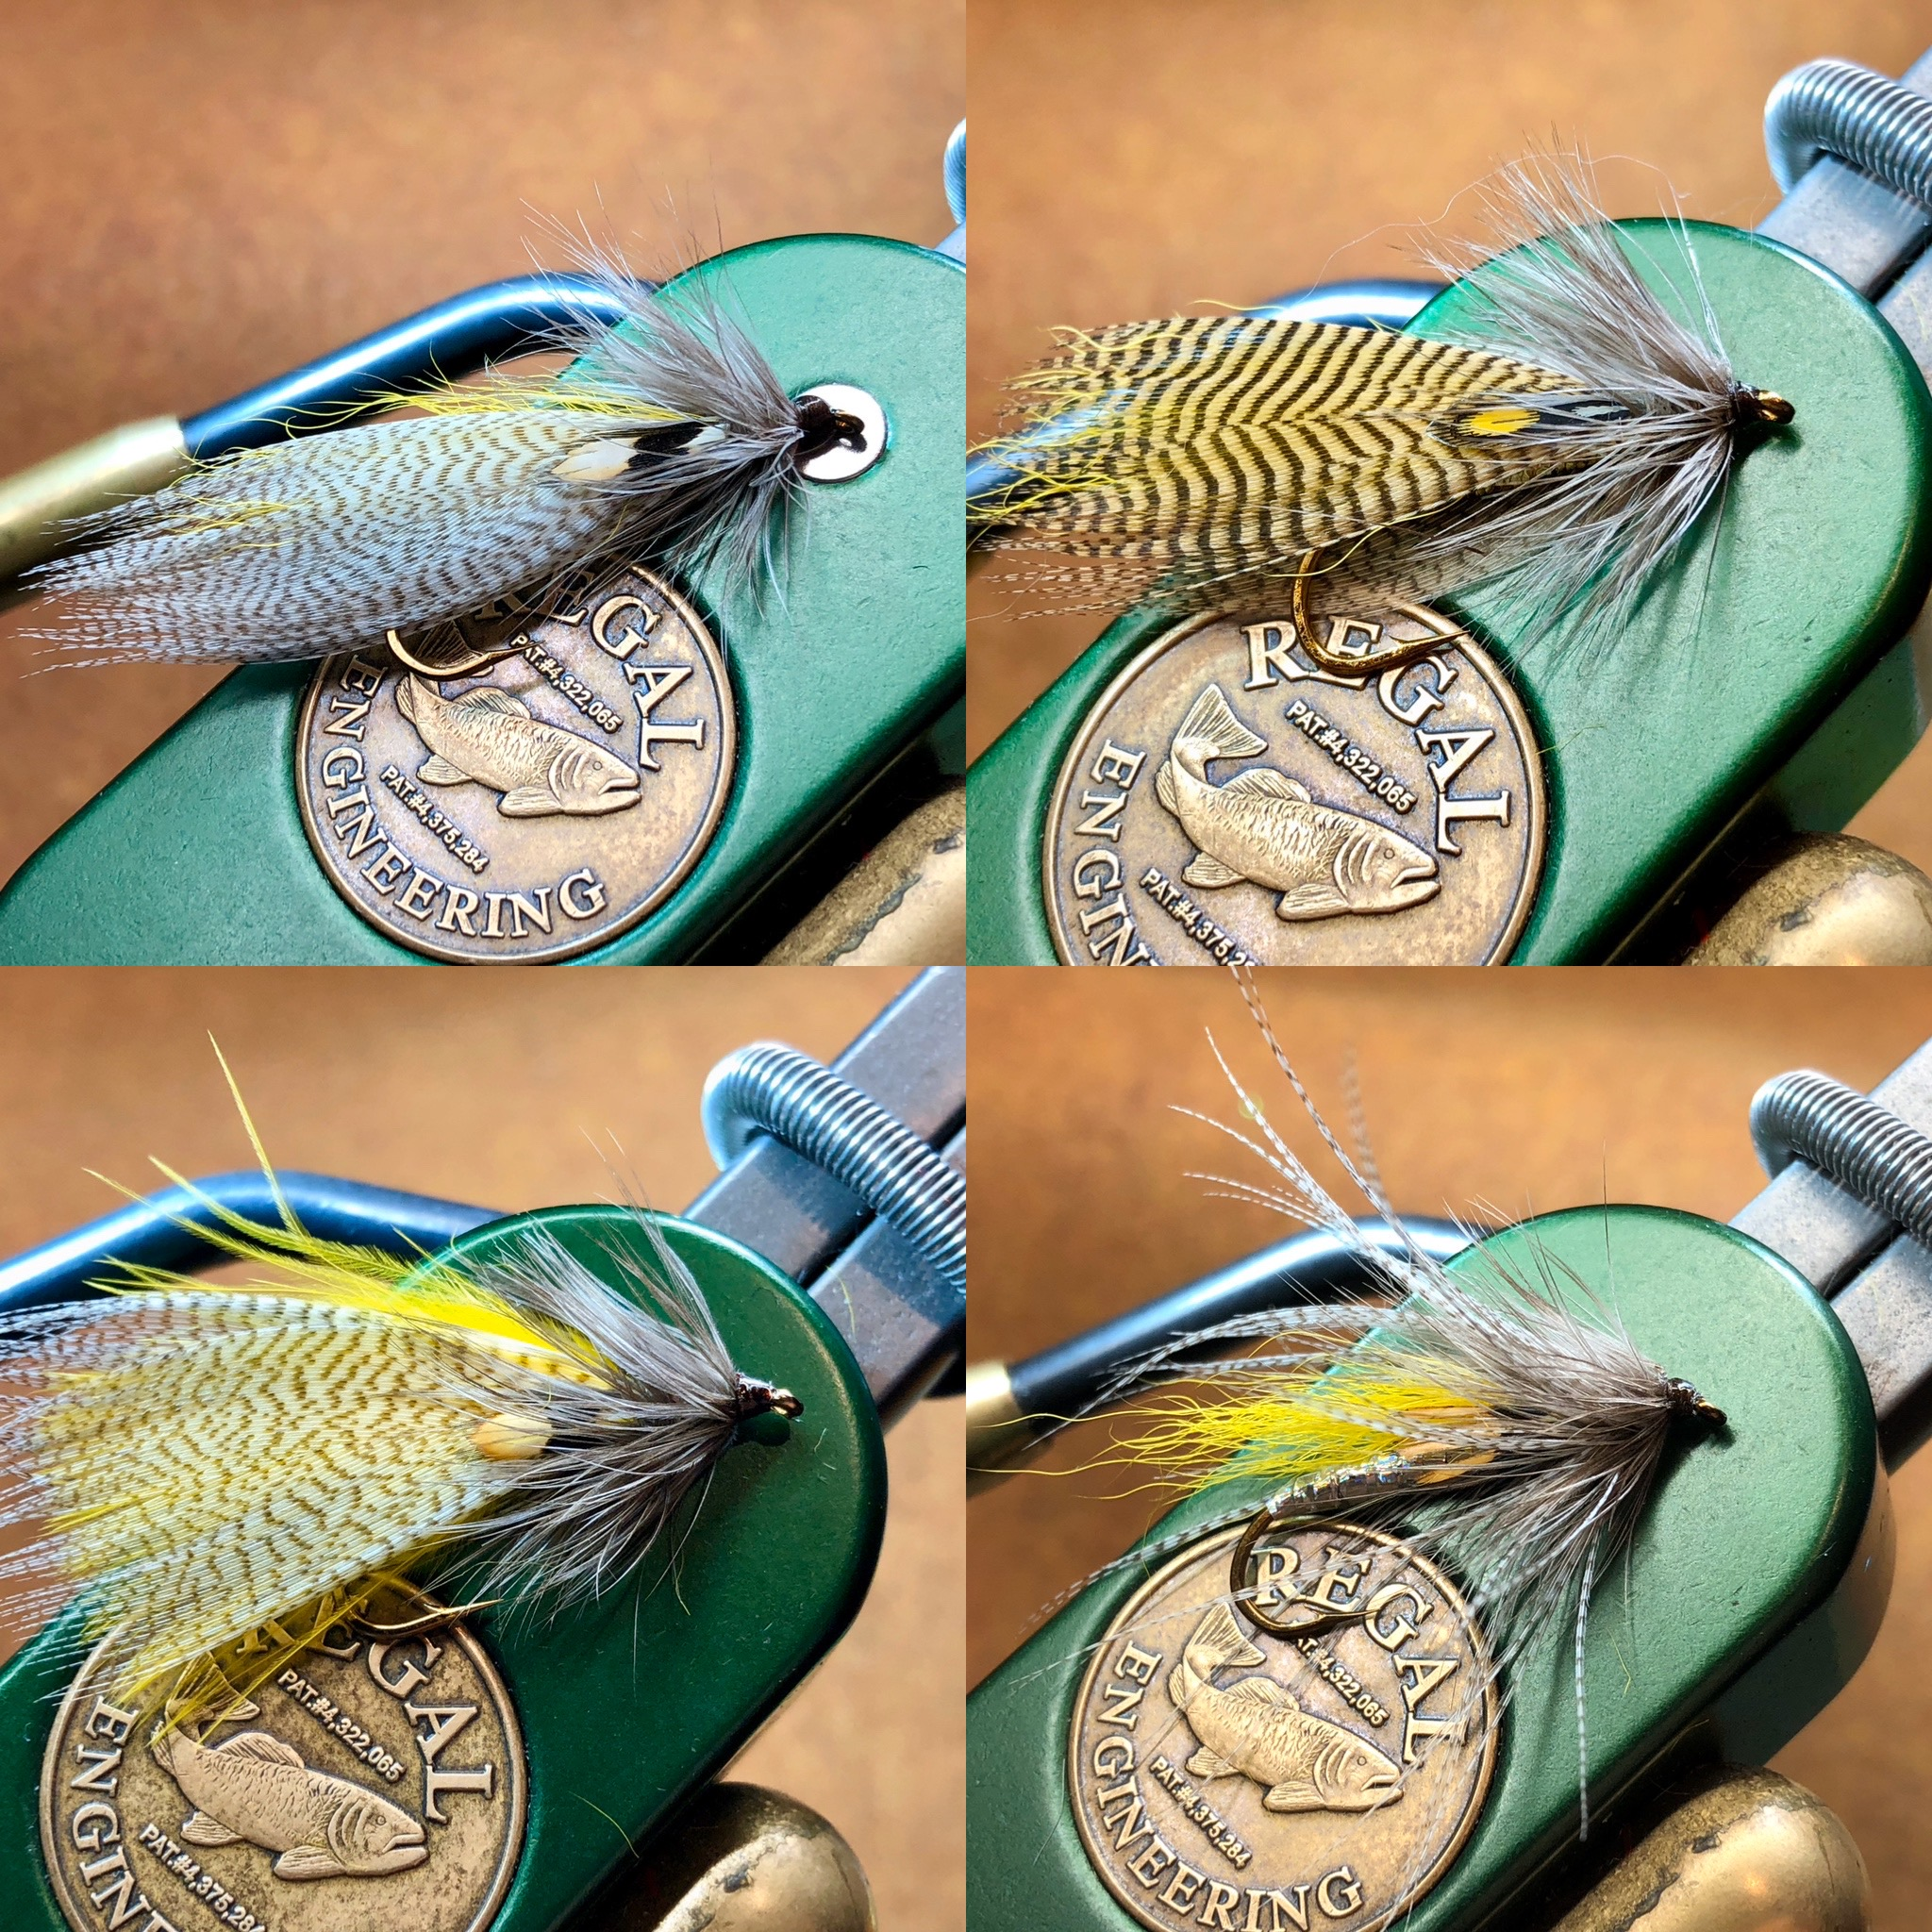 Some samples of my Hornberg Special Streamers